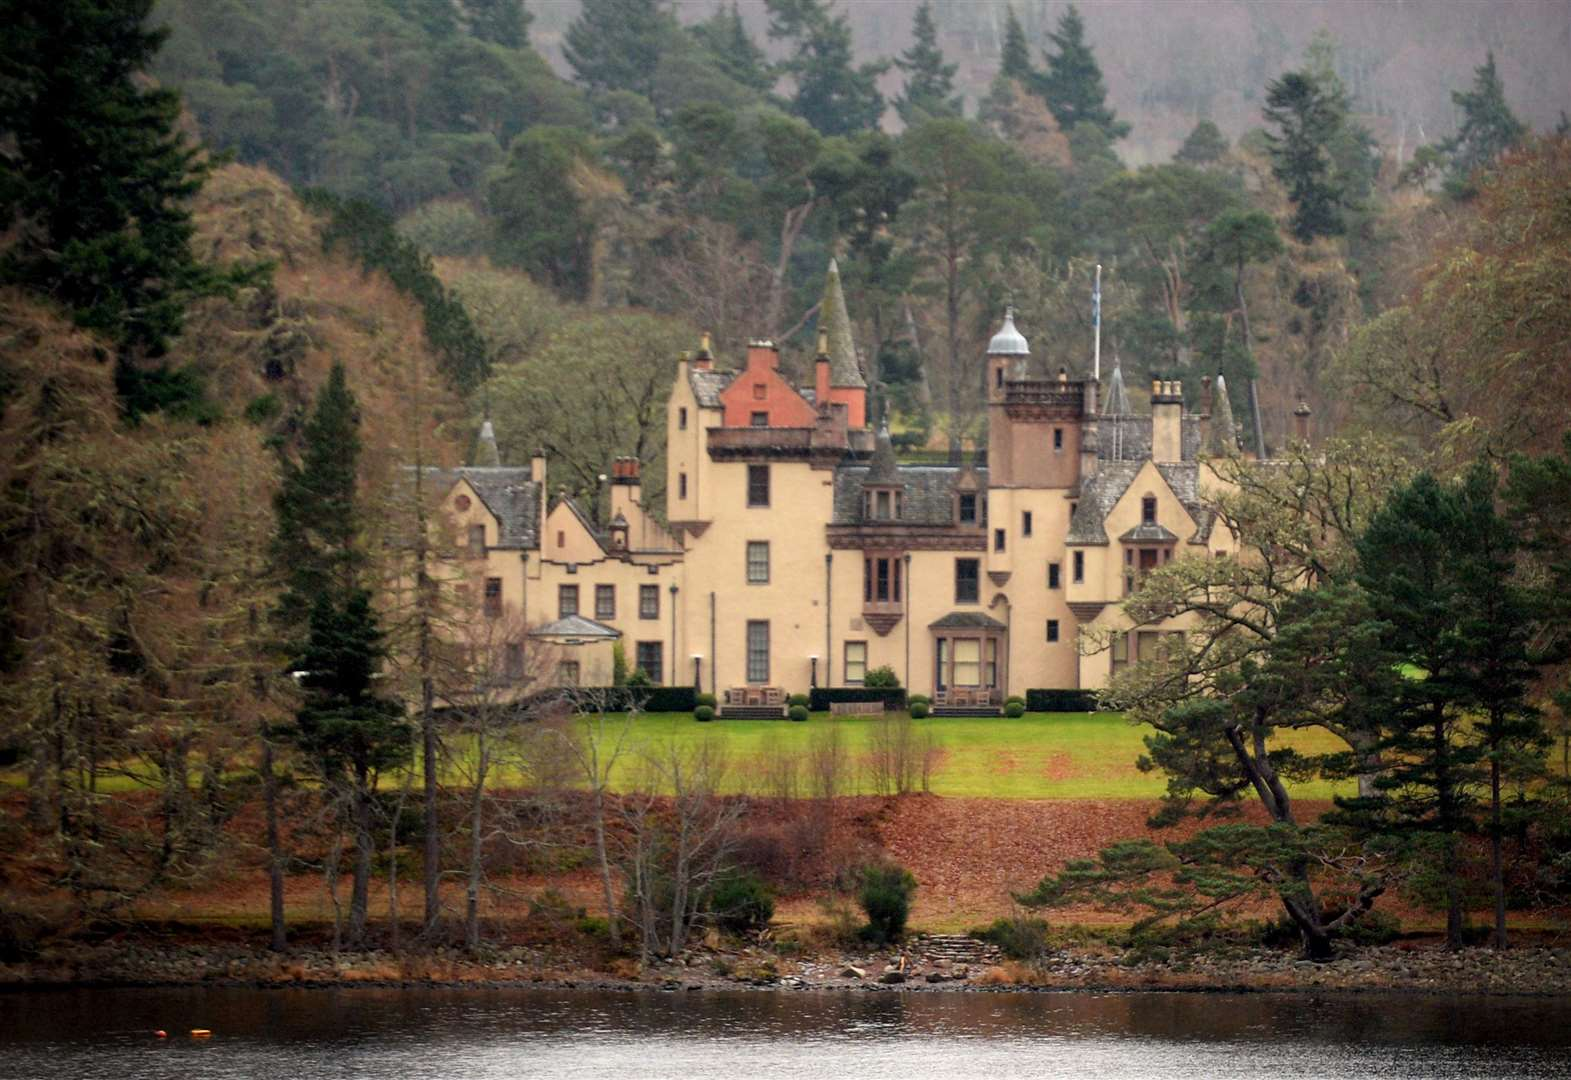 Historic Loch Ness boathouses could be brought back into use